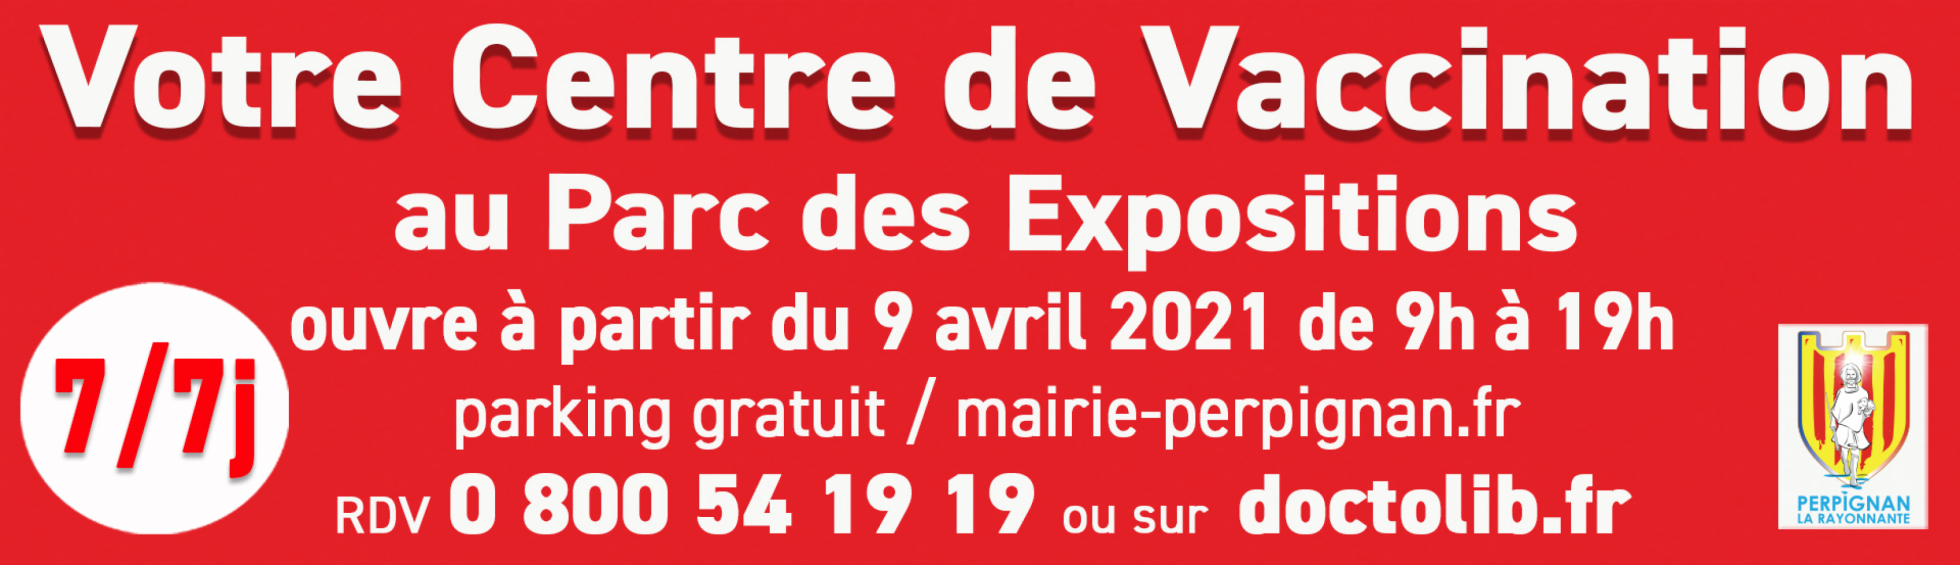 Centre de Vaccination au satellite du Parc des Expositions